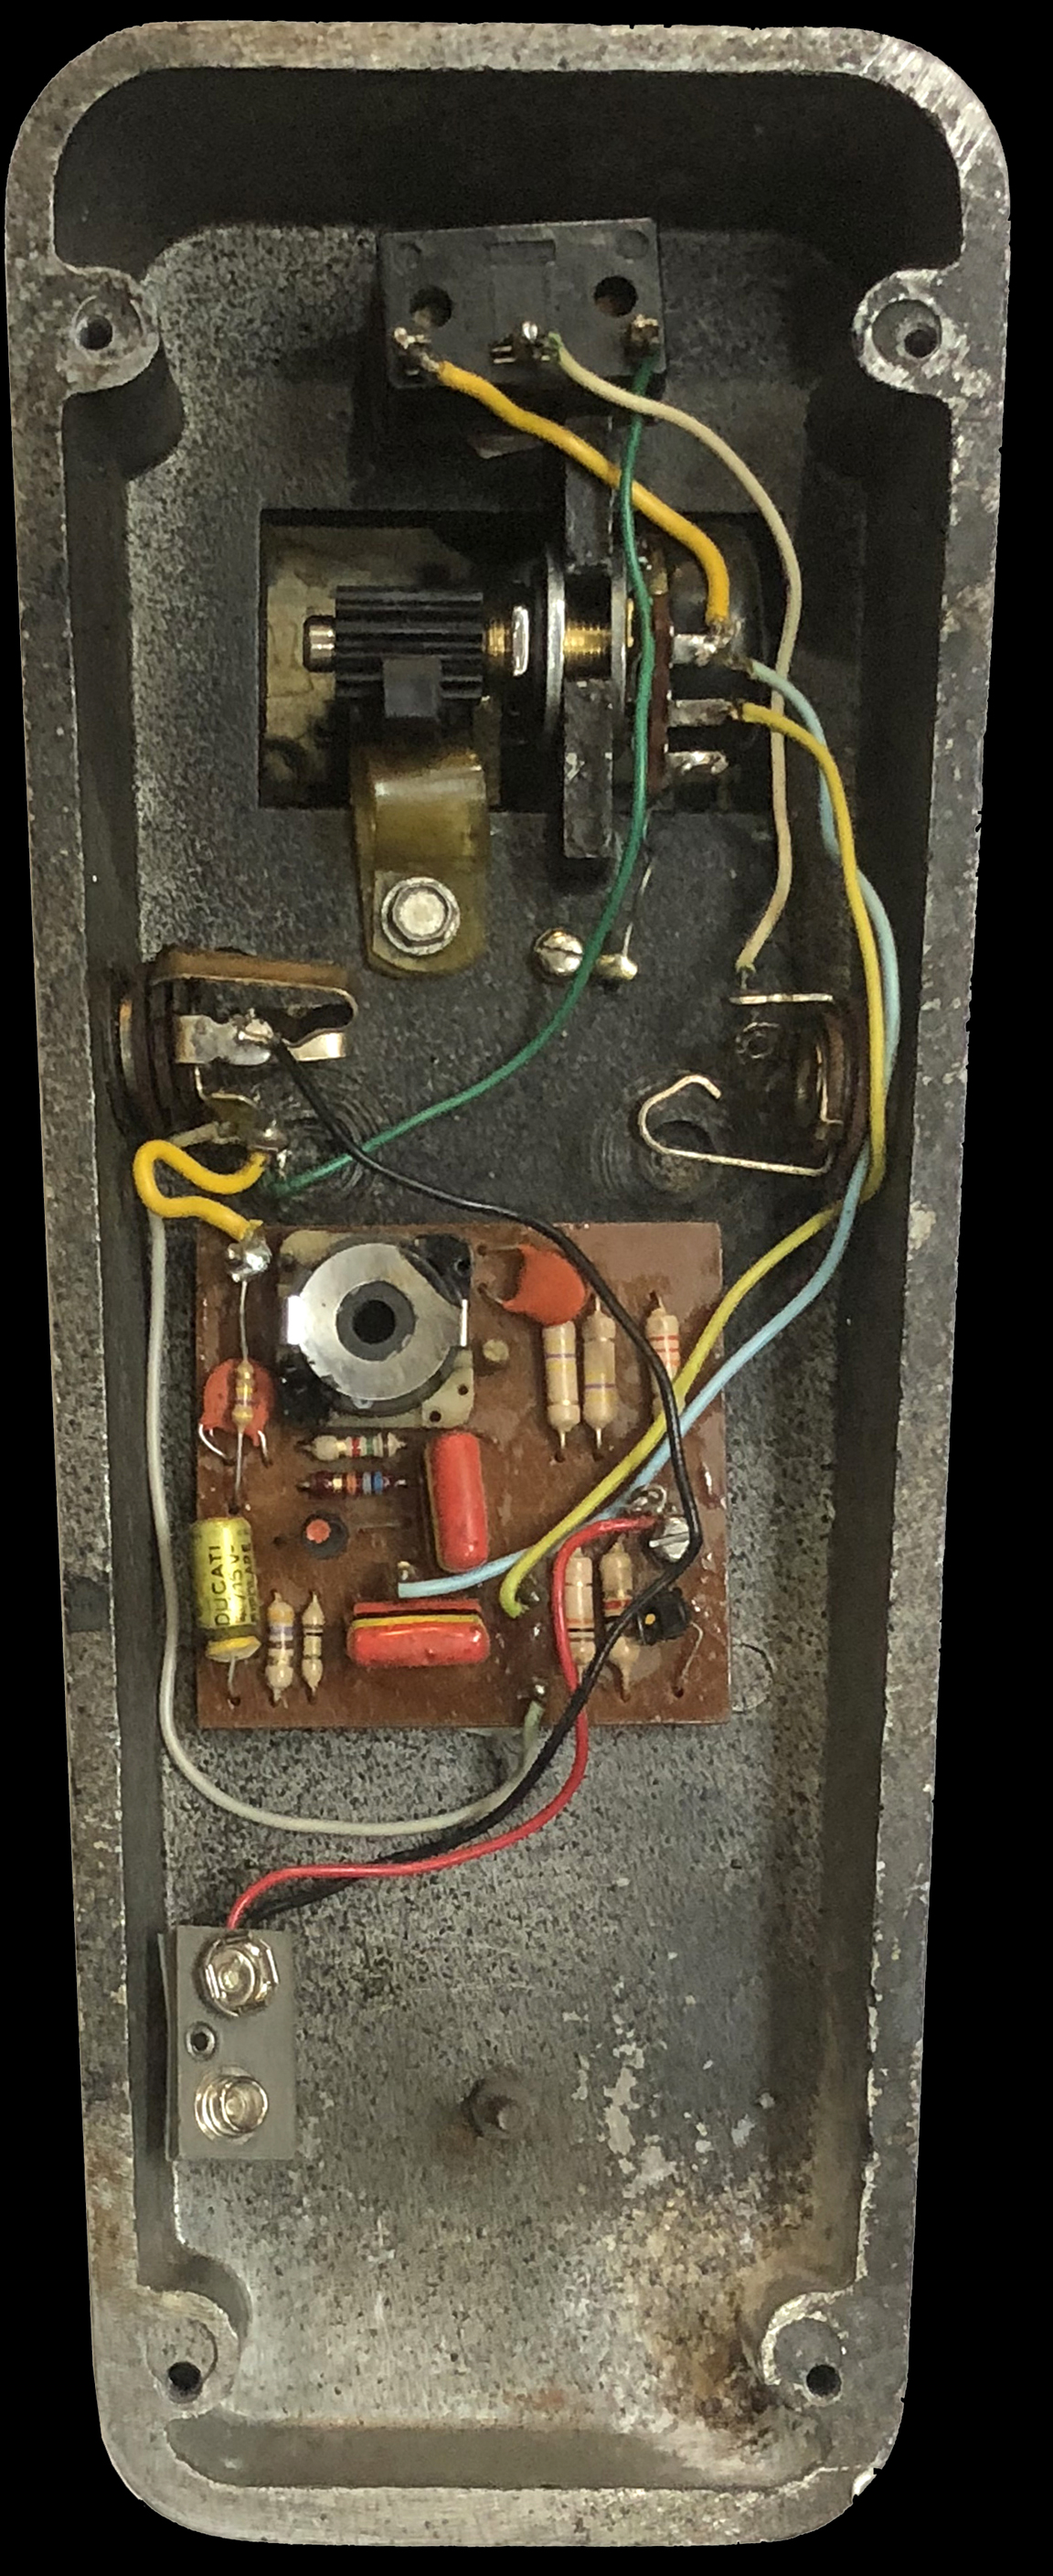 The Vox Showroom V846 Wah Pedal 1967 1978 Clarostat Potentiometer Wiring Early With Halo Inductor